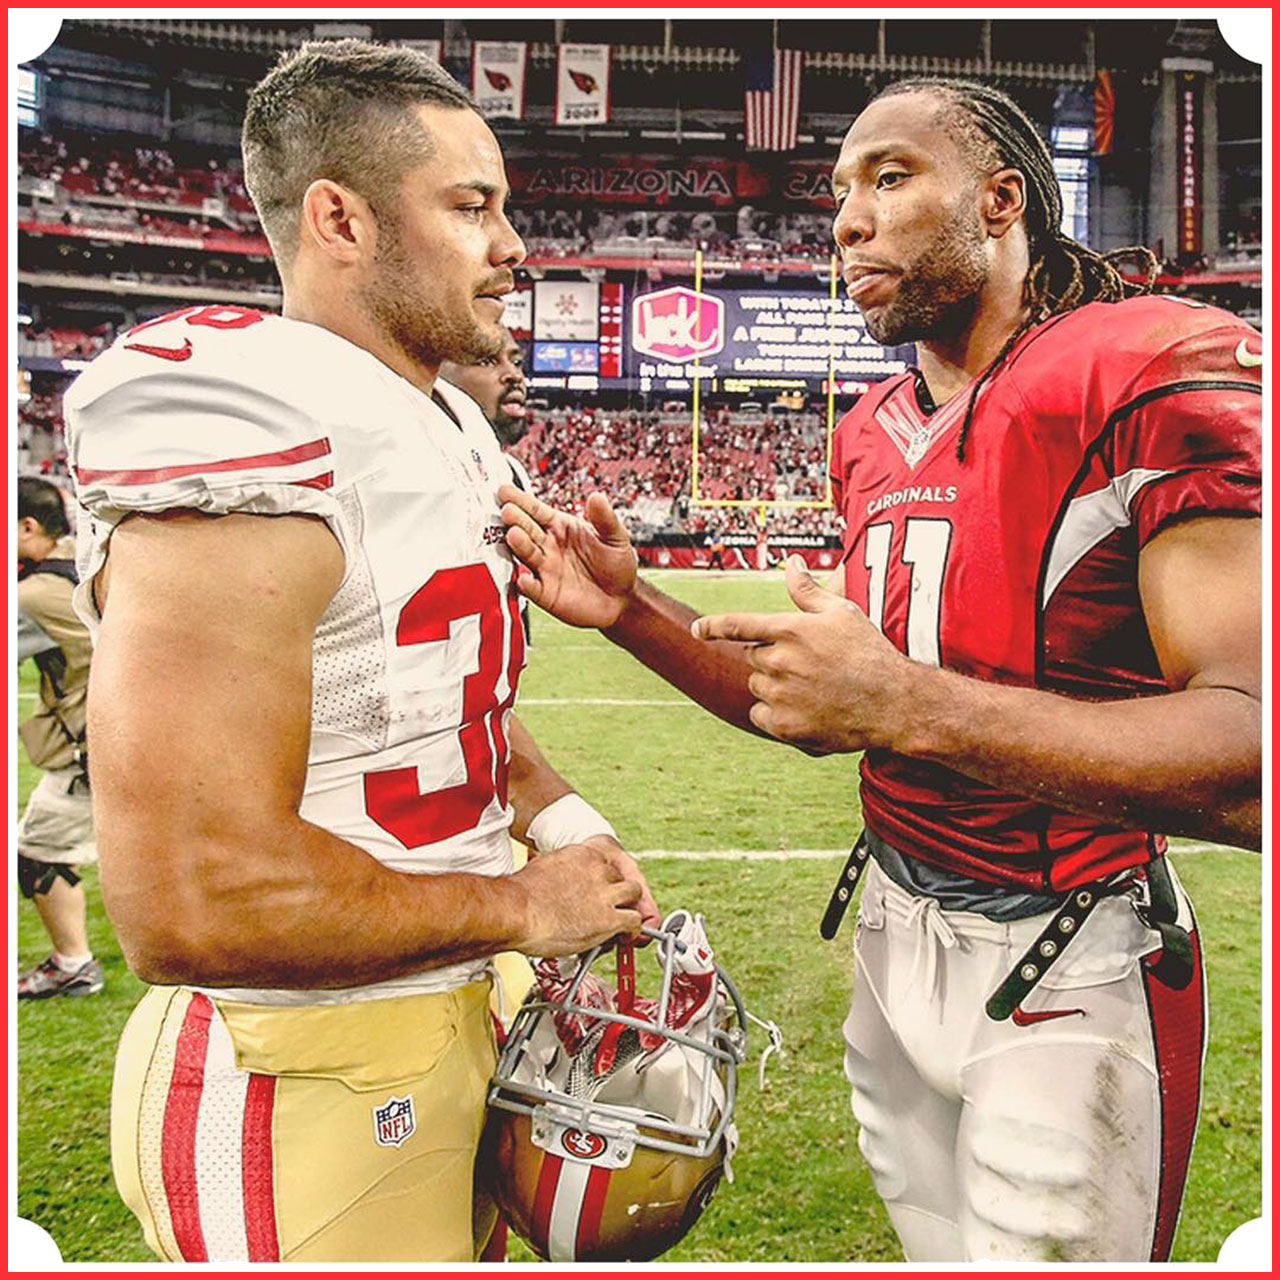 SF 49ers' Jarryd Hayne listens to some friendly advice after Arizona Cardinals game